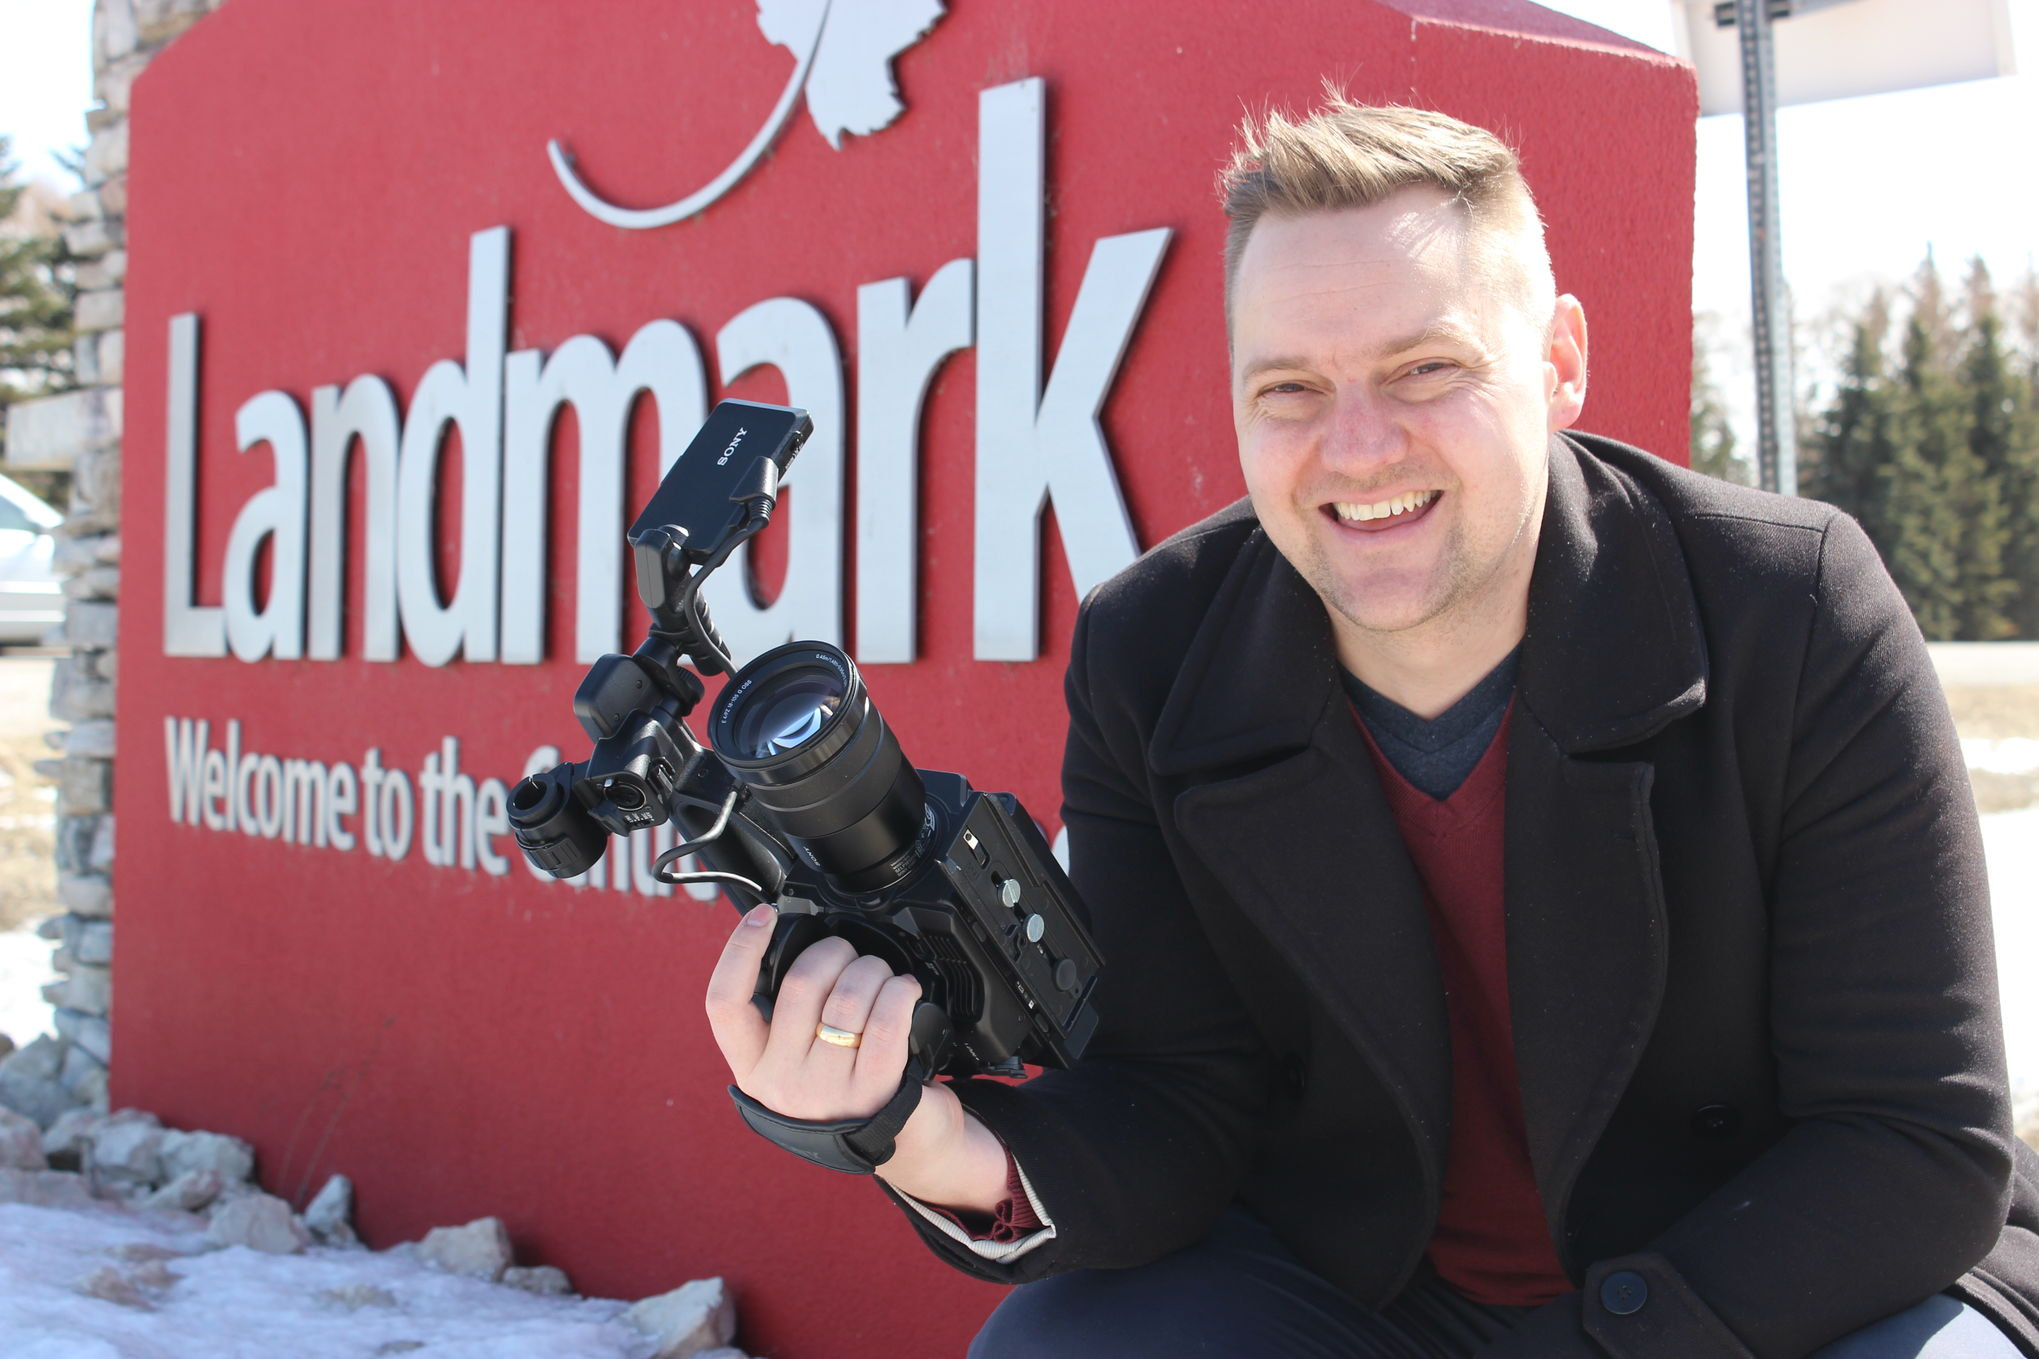 Filmmaker Paul Plett, seen here last April in his hometown of Landmark, announced plans this week for a new documentary about his Mennonite heritage that will take him to Ukraine and the Netherlands.